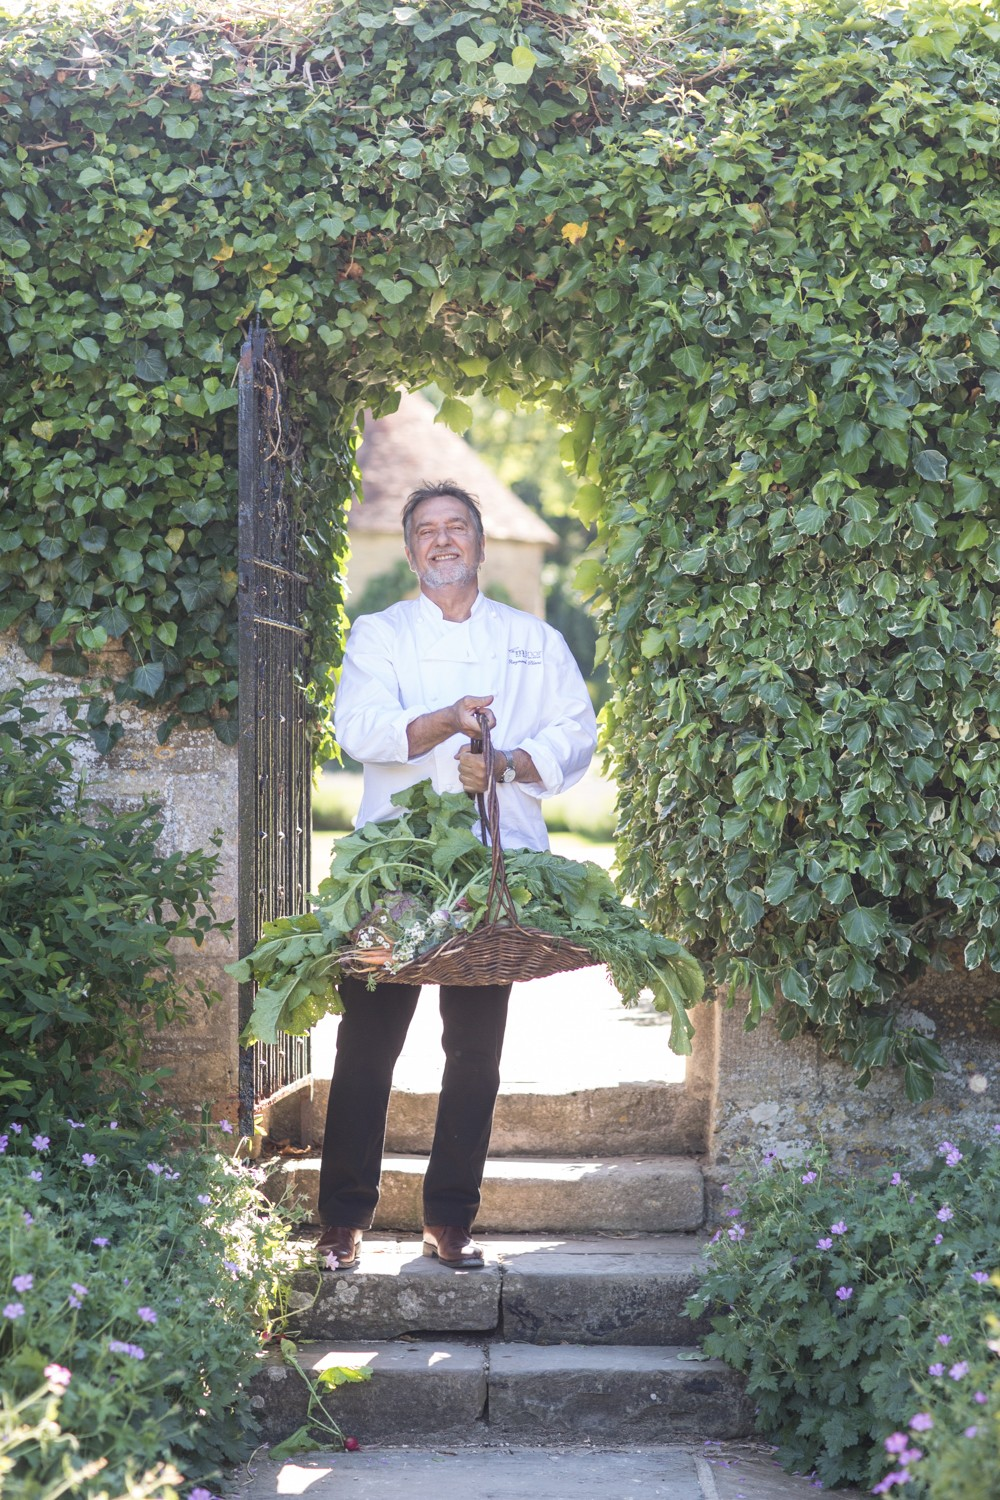 Raymond Blanc with fresh produce from the gardens